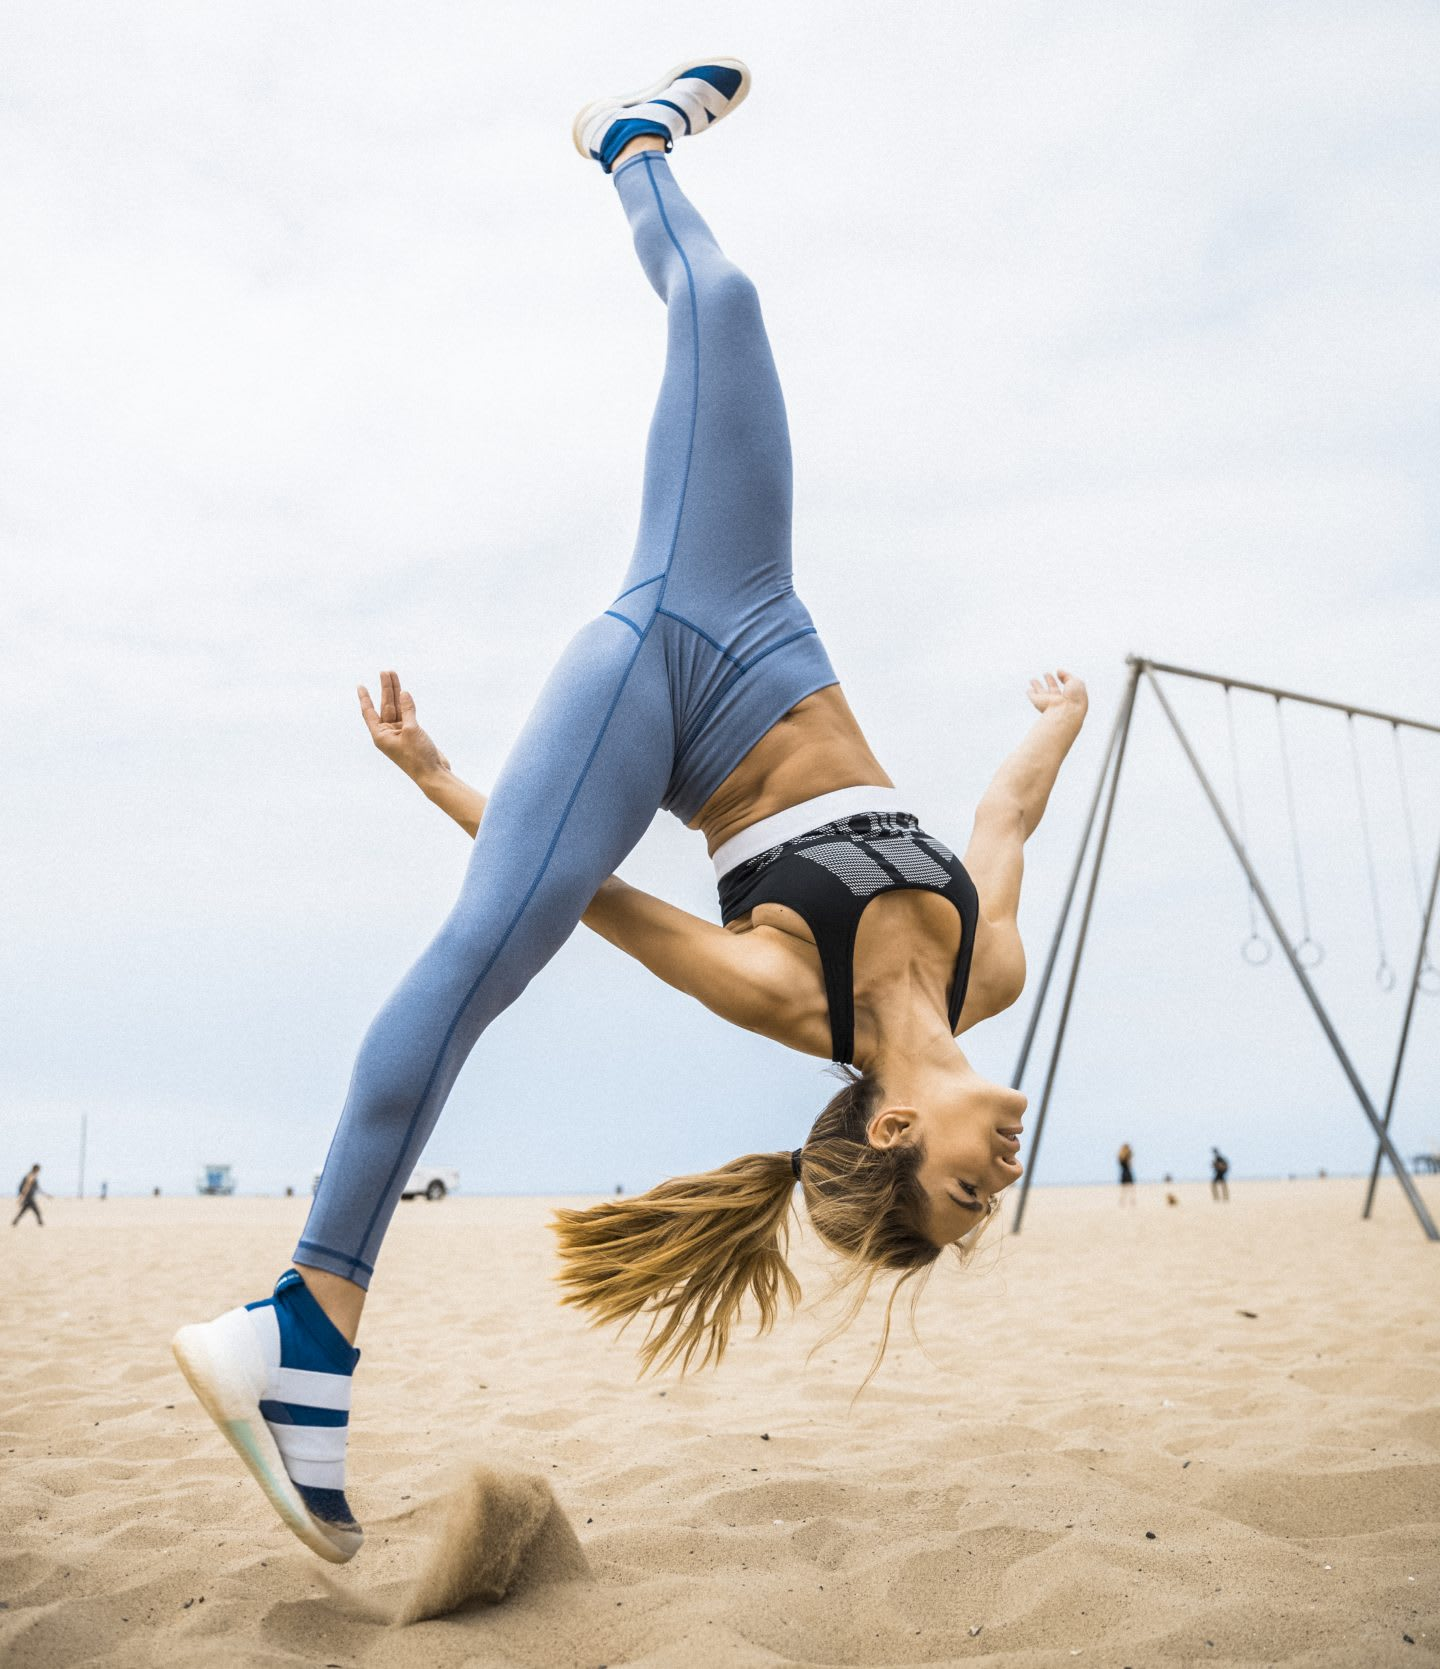 Woman doing a cartwheel showing body tension and bursting of energy, motivation, boost your performance, gymnastics, adidas, GamePlan A